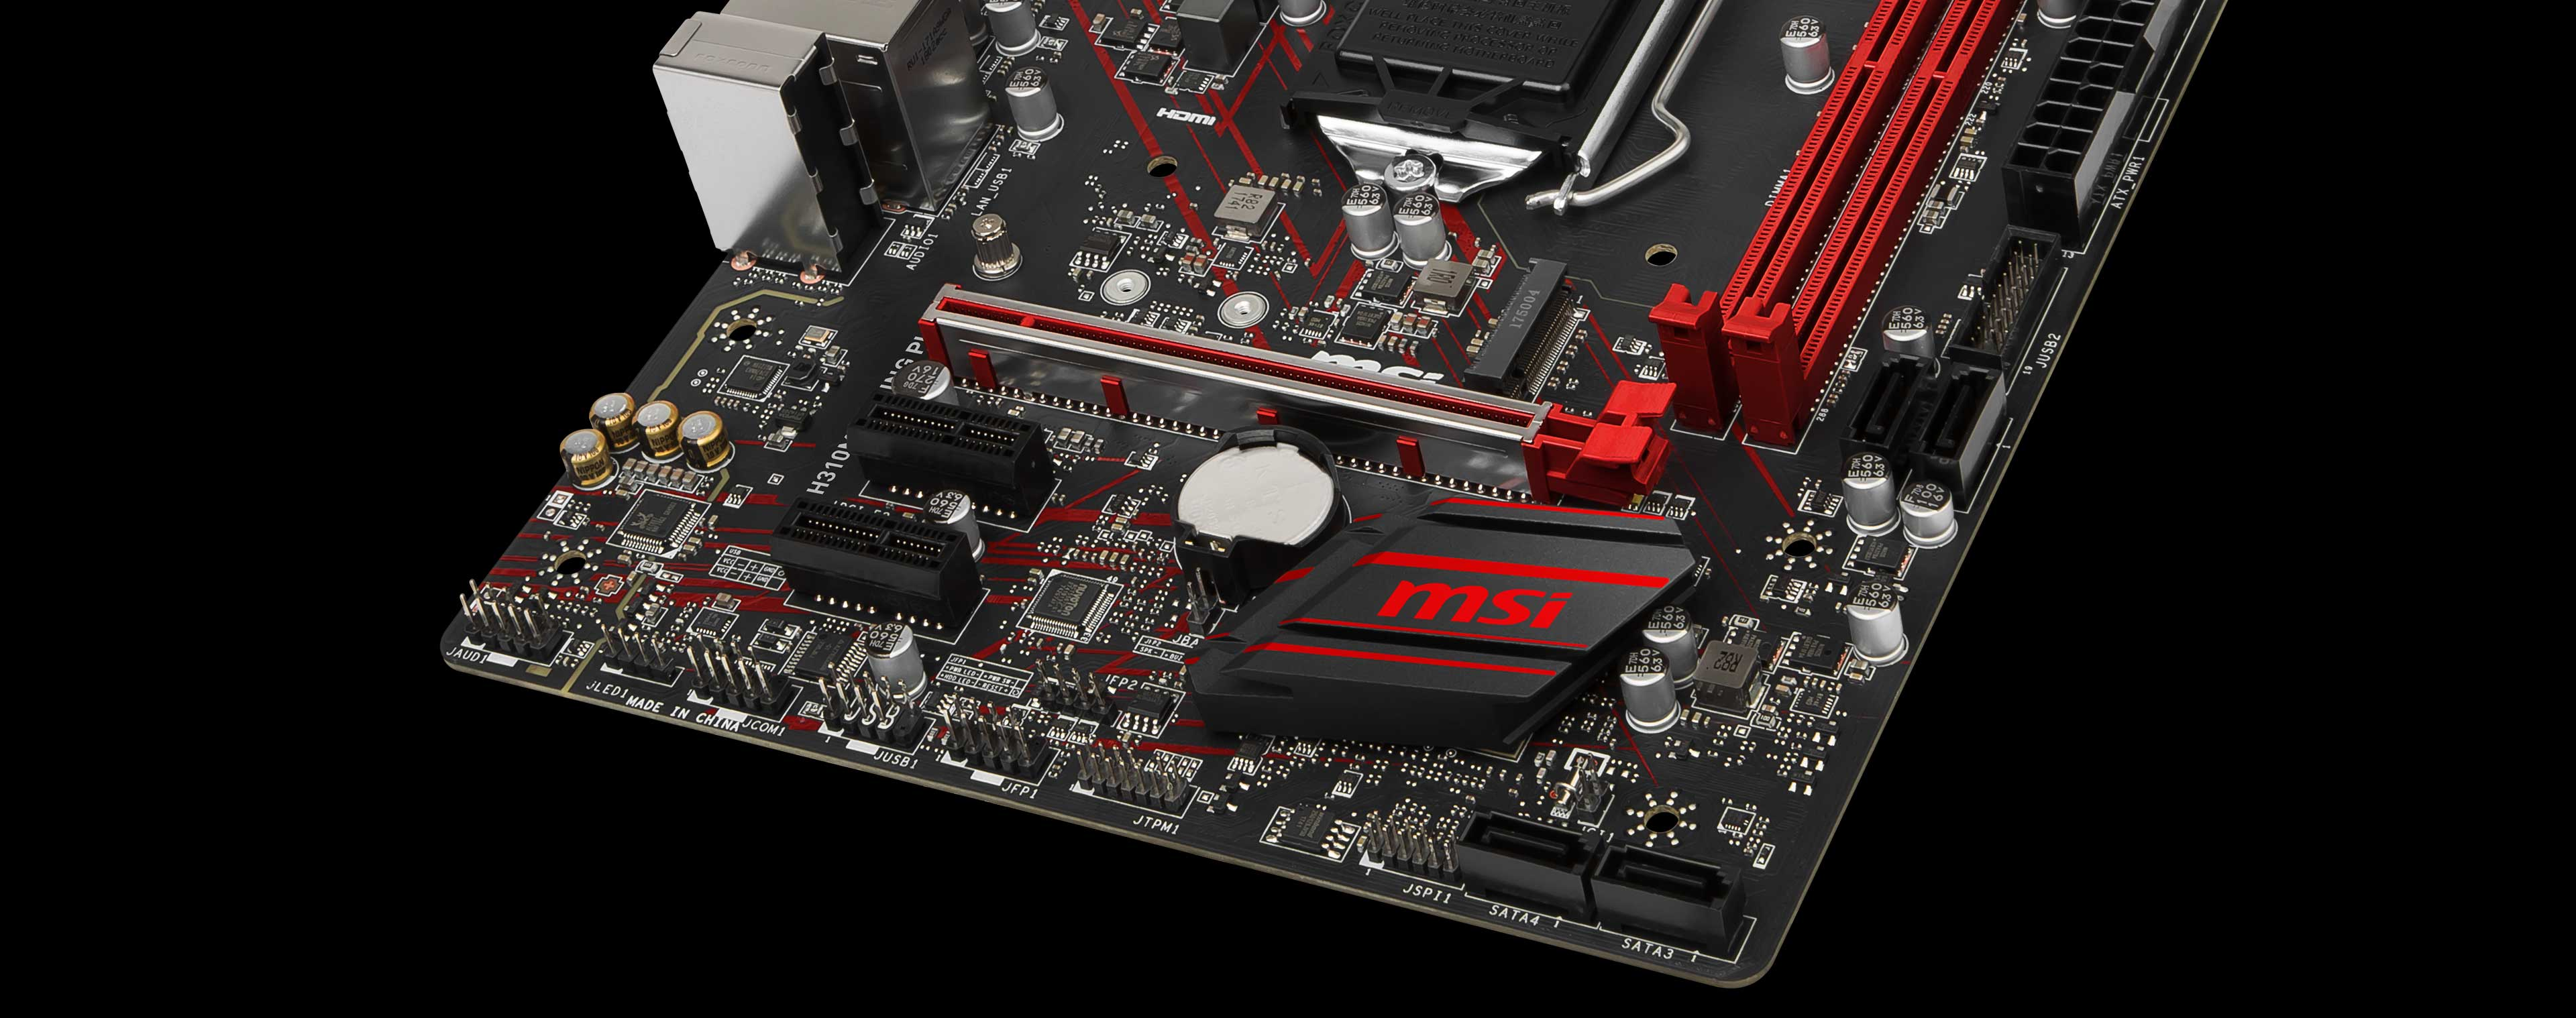 H310M GAMING PLUS | Motherboard - The world leader in motherboard